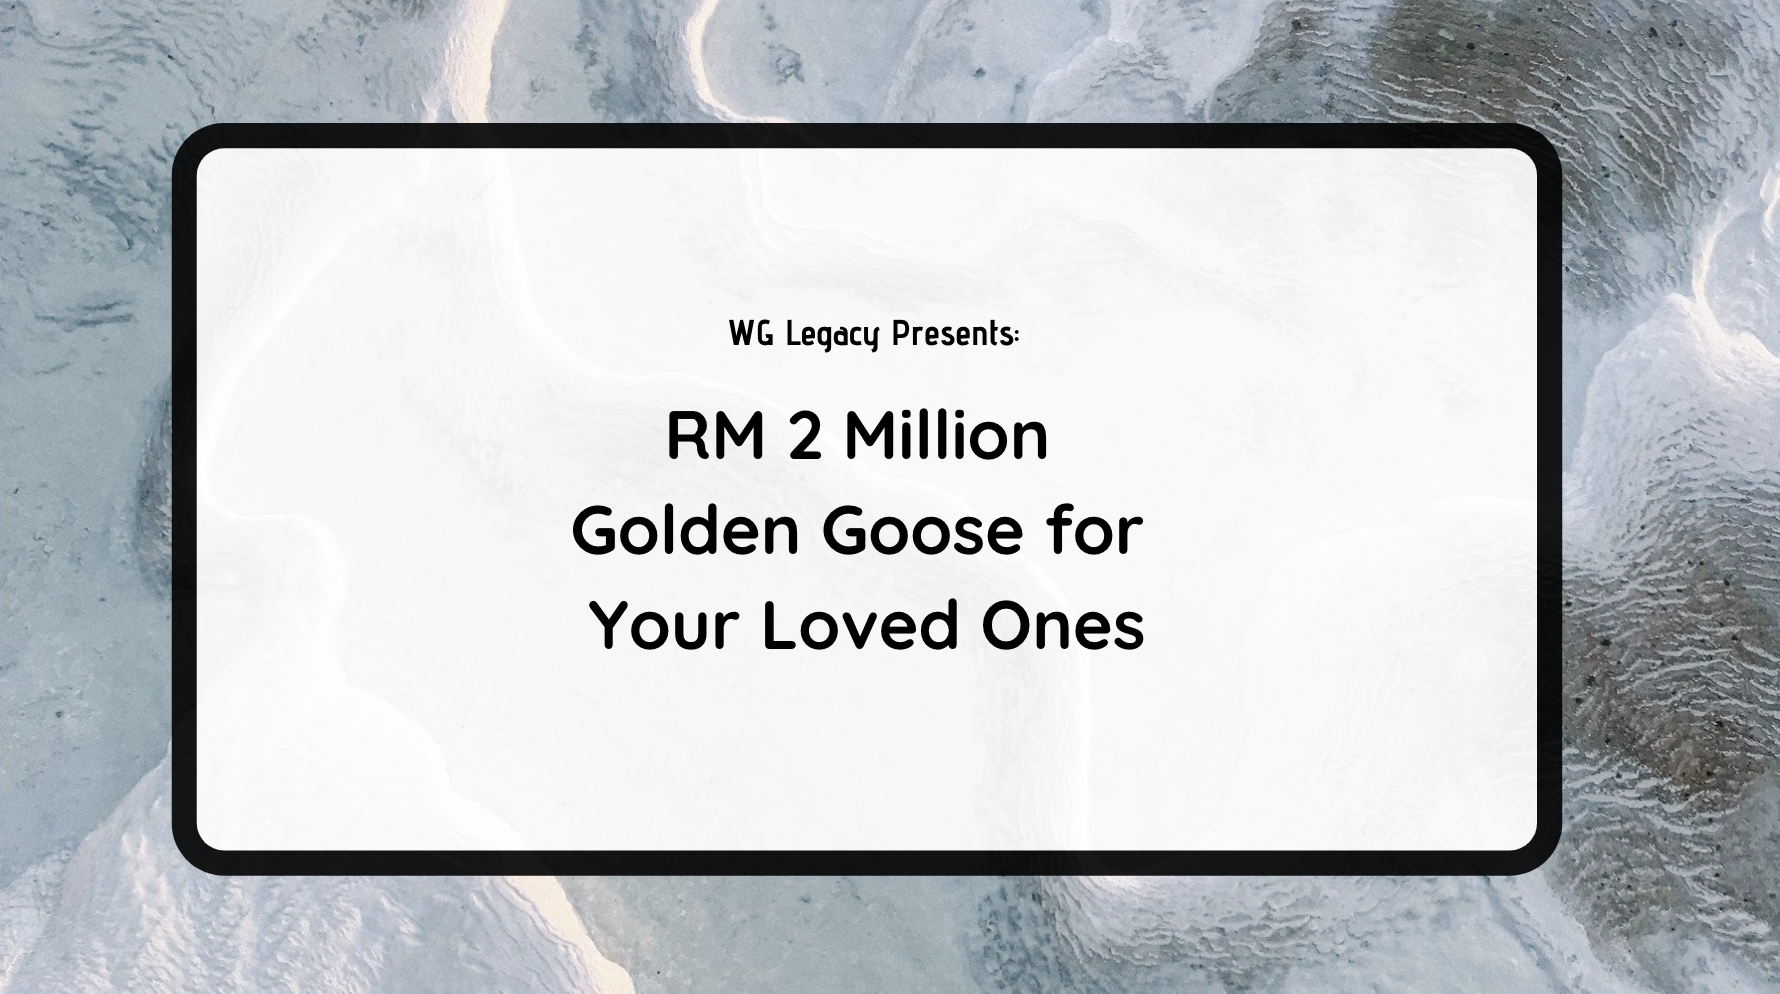 RM 2 Million Golden Goose for Your Loved Ones